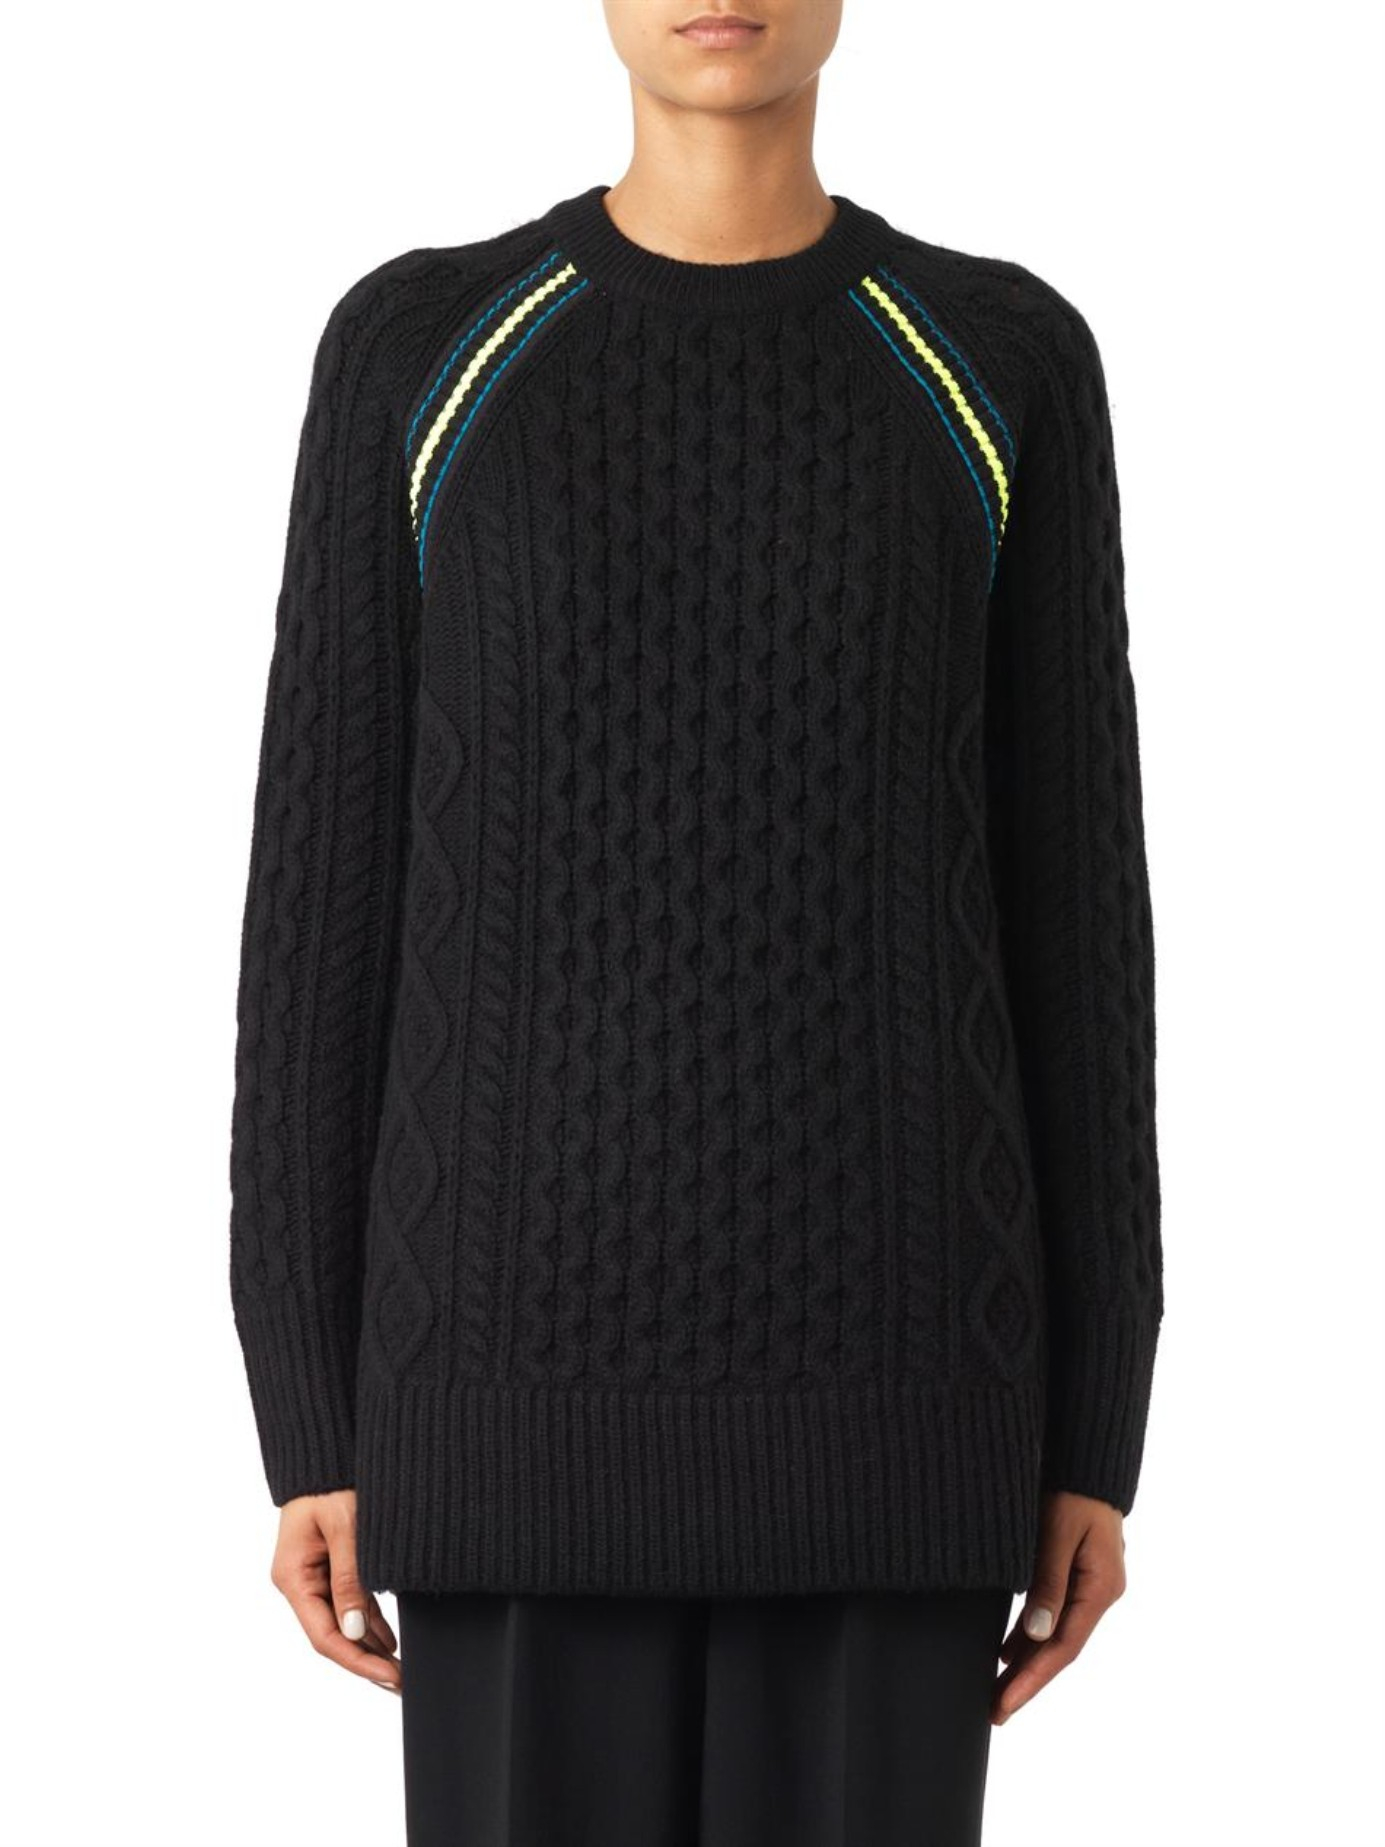 T by alexander wang Contrast-Stripe Aran-Knit Sweater in ...